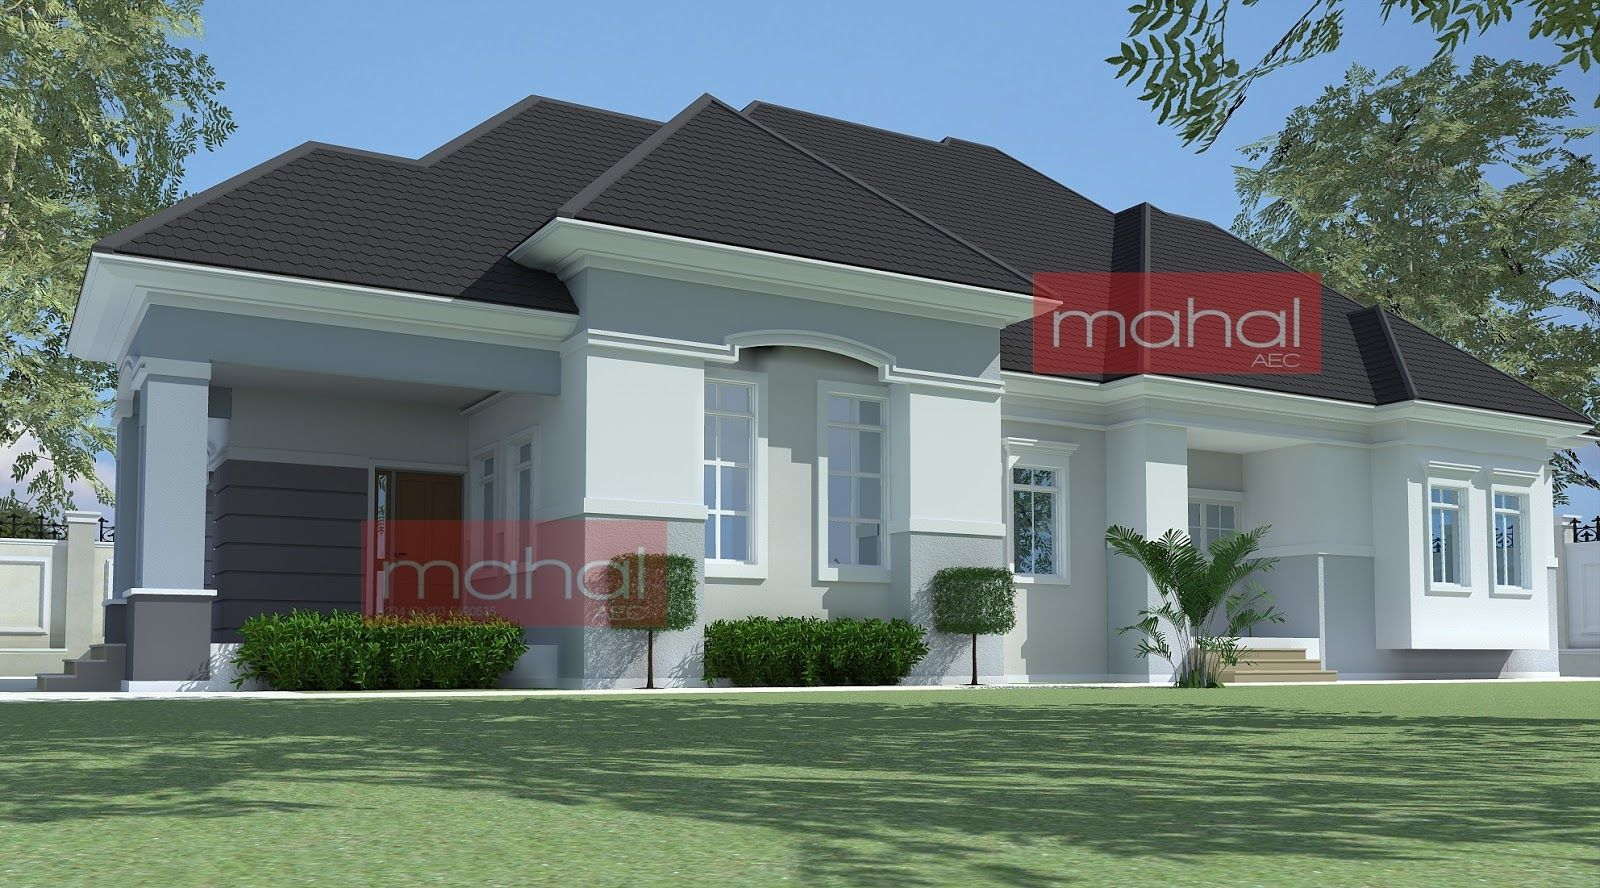 4 bedroom bungalow plan in nigeria 4 bedroom bungalow for Bungalow outside design